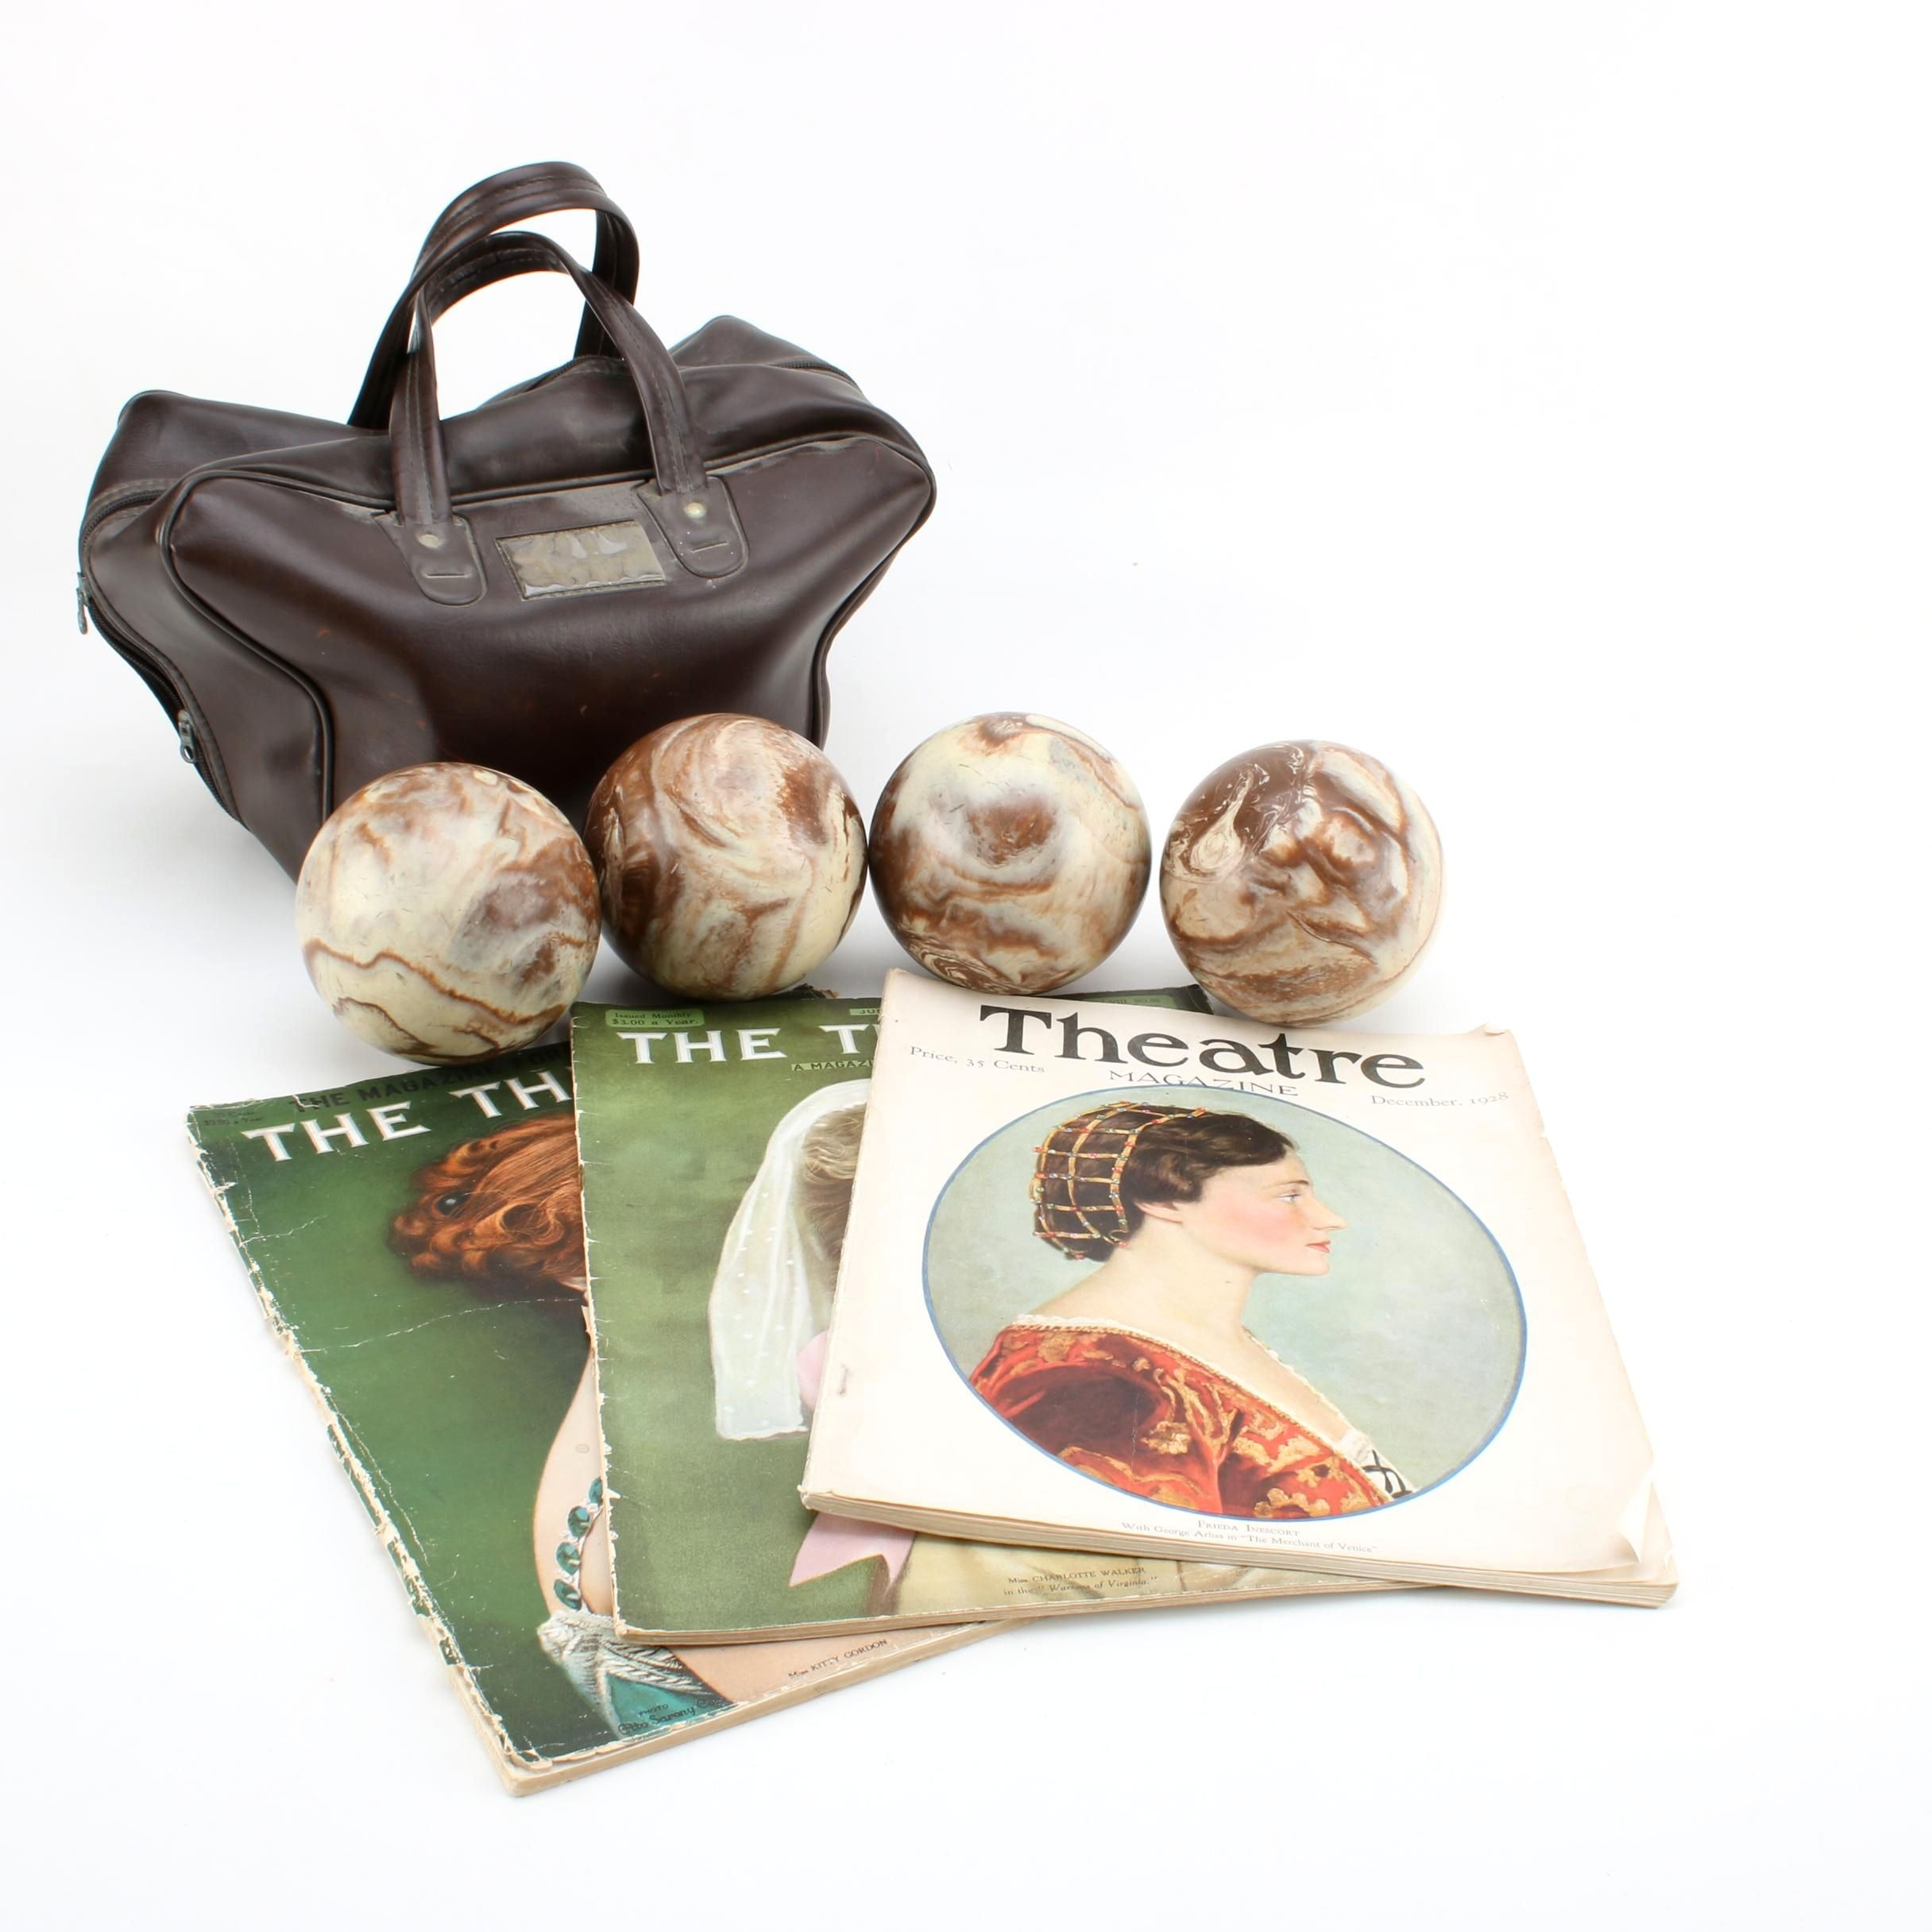 """Antique """"The Theatre"""" Magazines with Vintage Bocce Ball Set"""